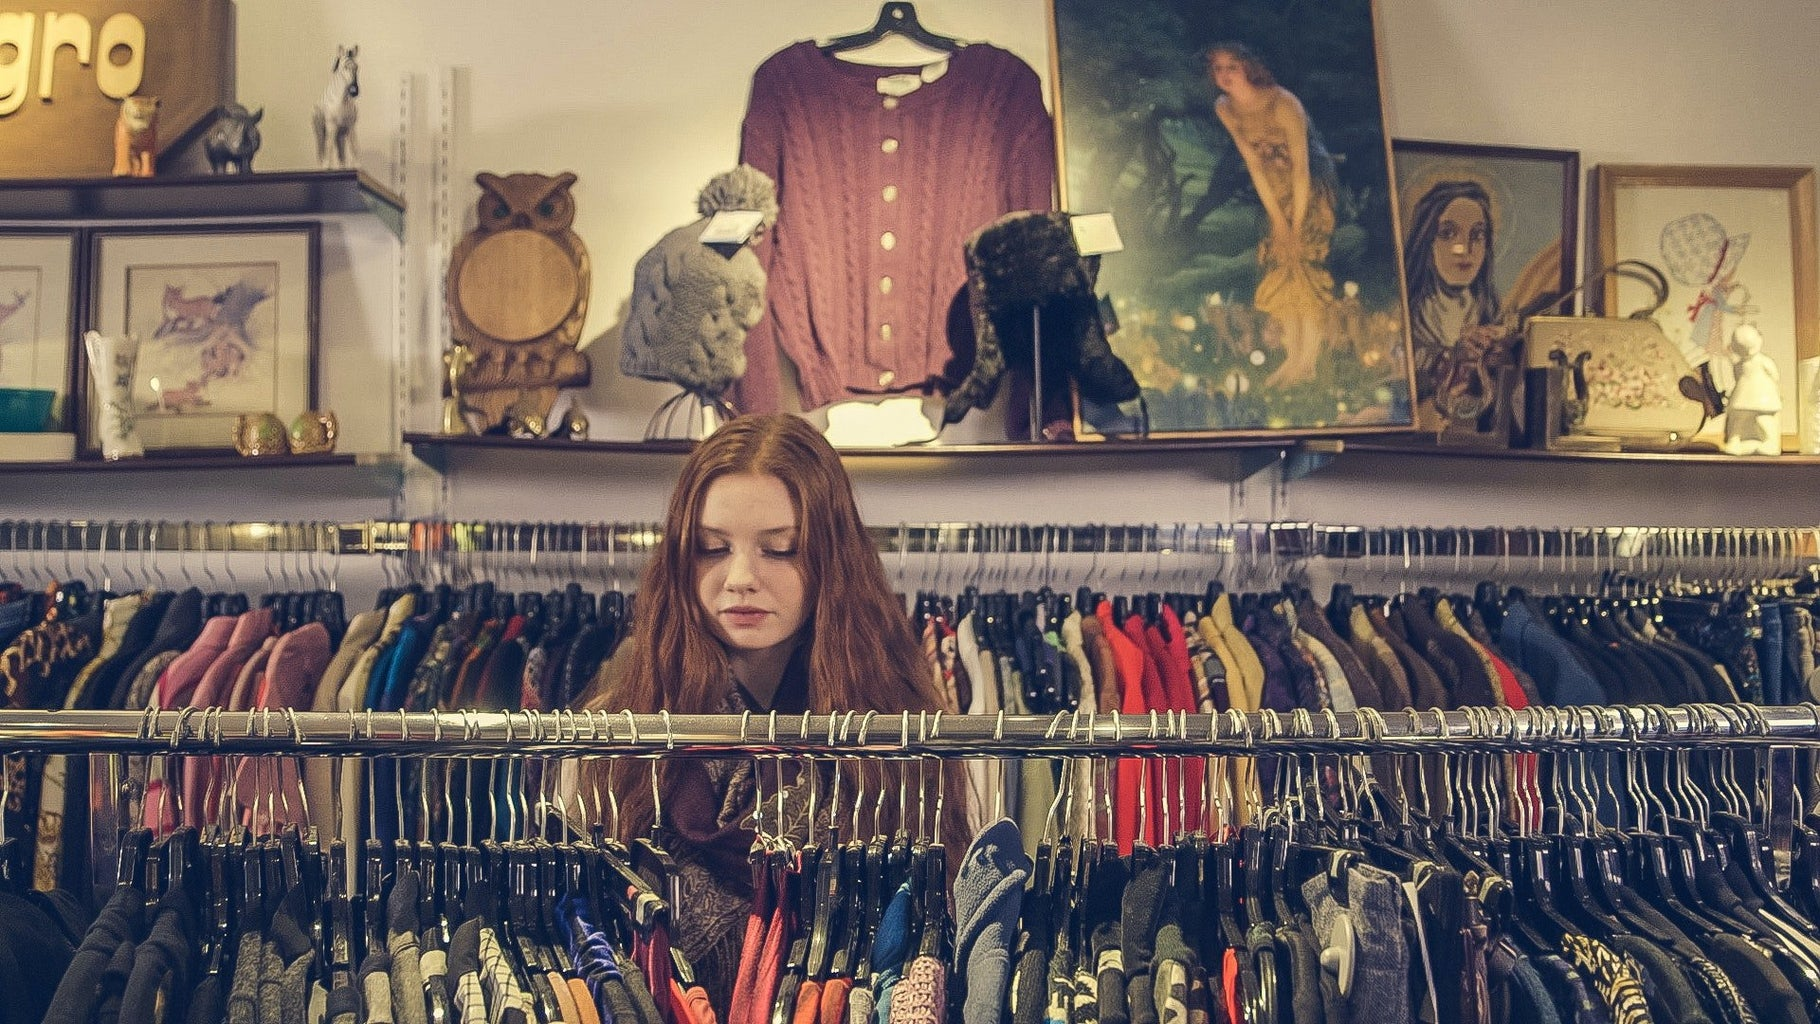 woman shopping for clothes in store